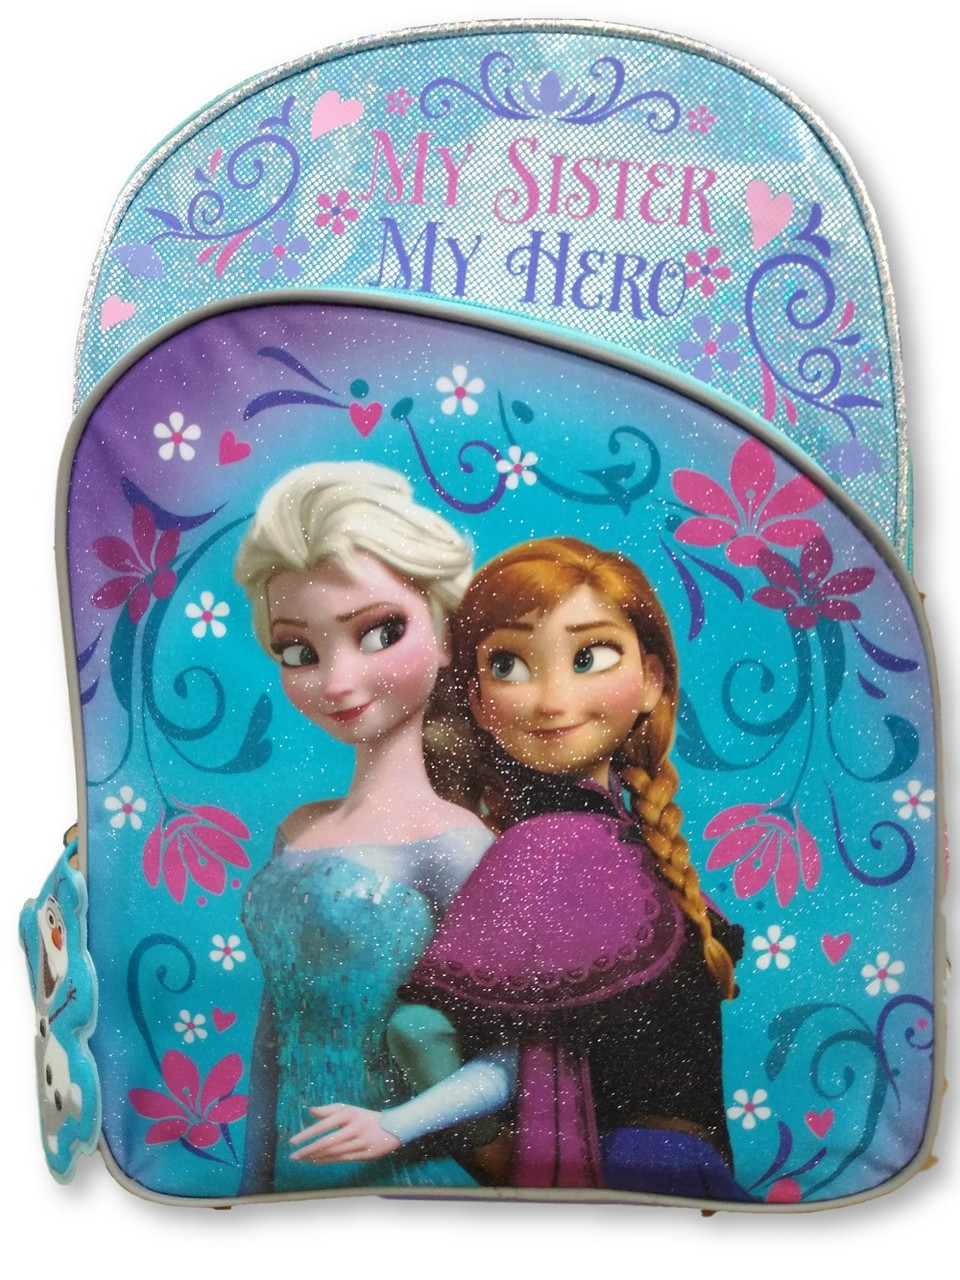 Backpack - Frozen - Large 16 Inch - Girls - My Sister, My Hero